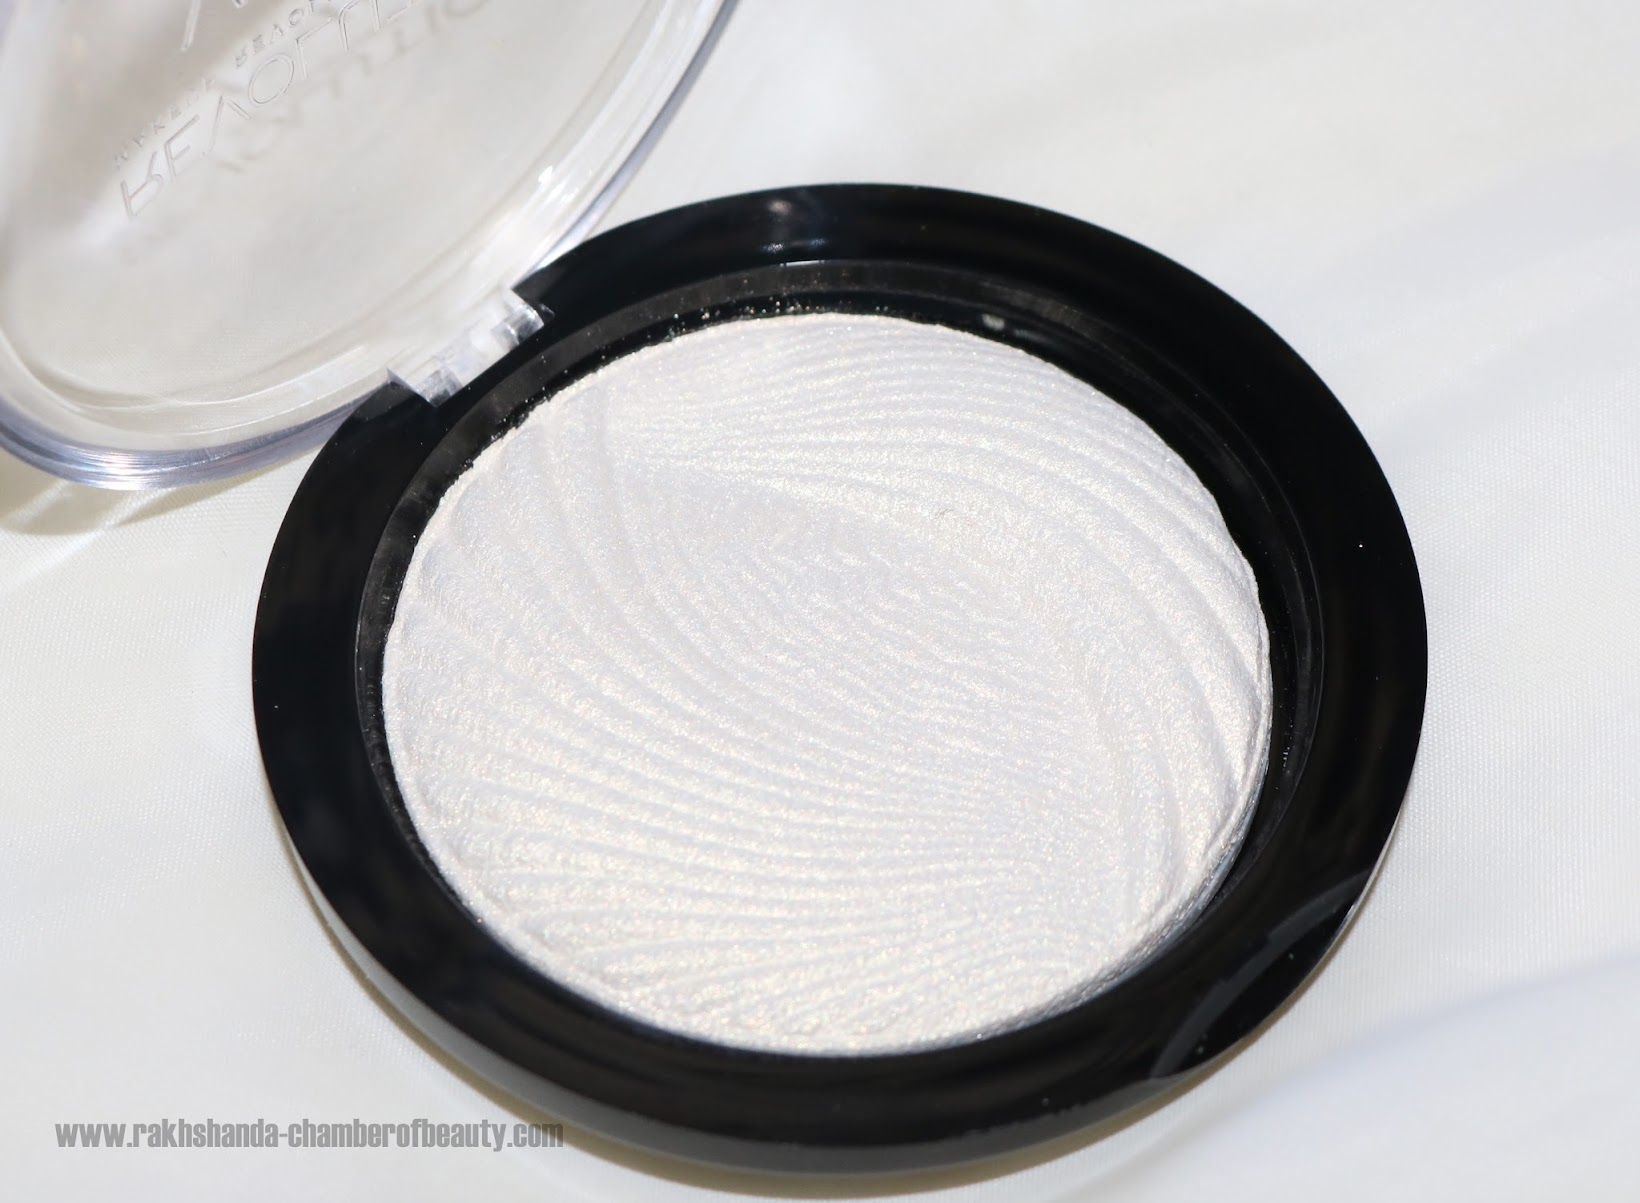 affordable highlighters in India, Indian beauty blogger, Makeup Revolution London, Makeup Revolution Vivid Baked Highlighter review, review, review and swatches,